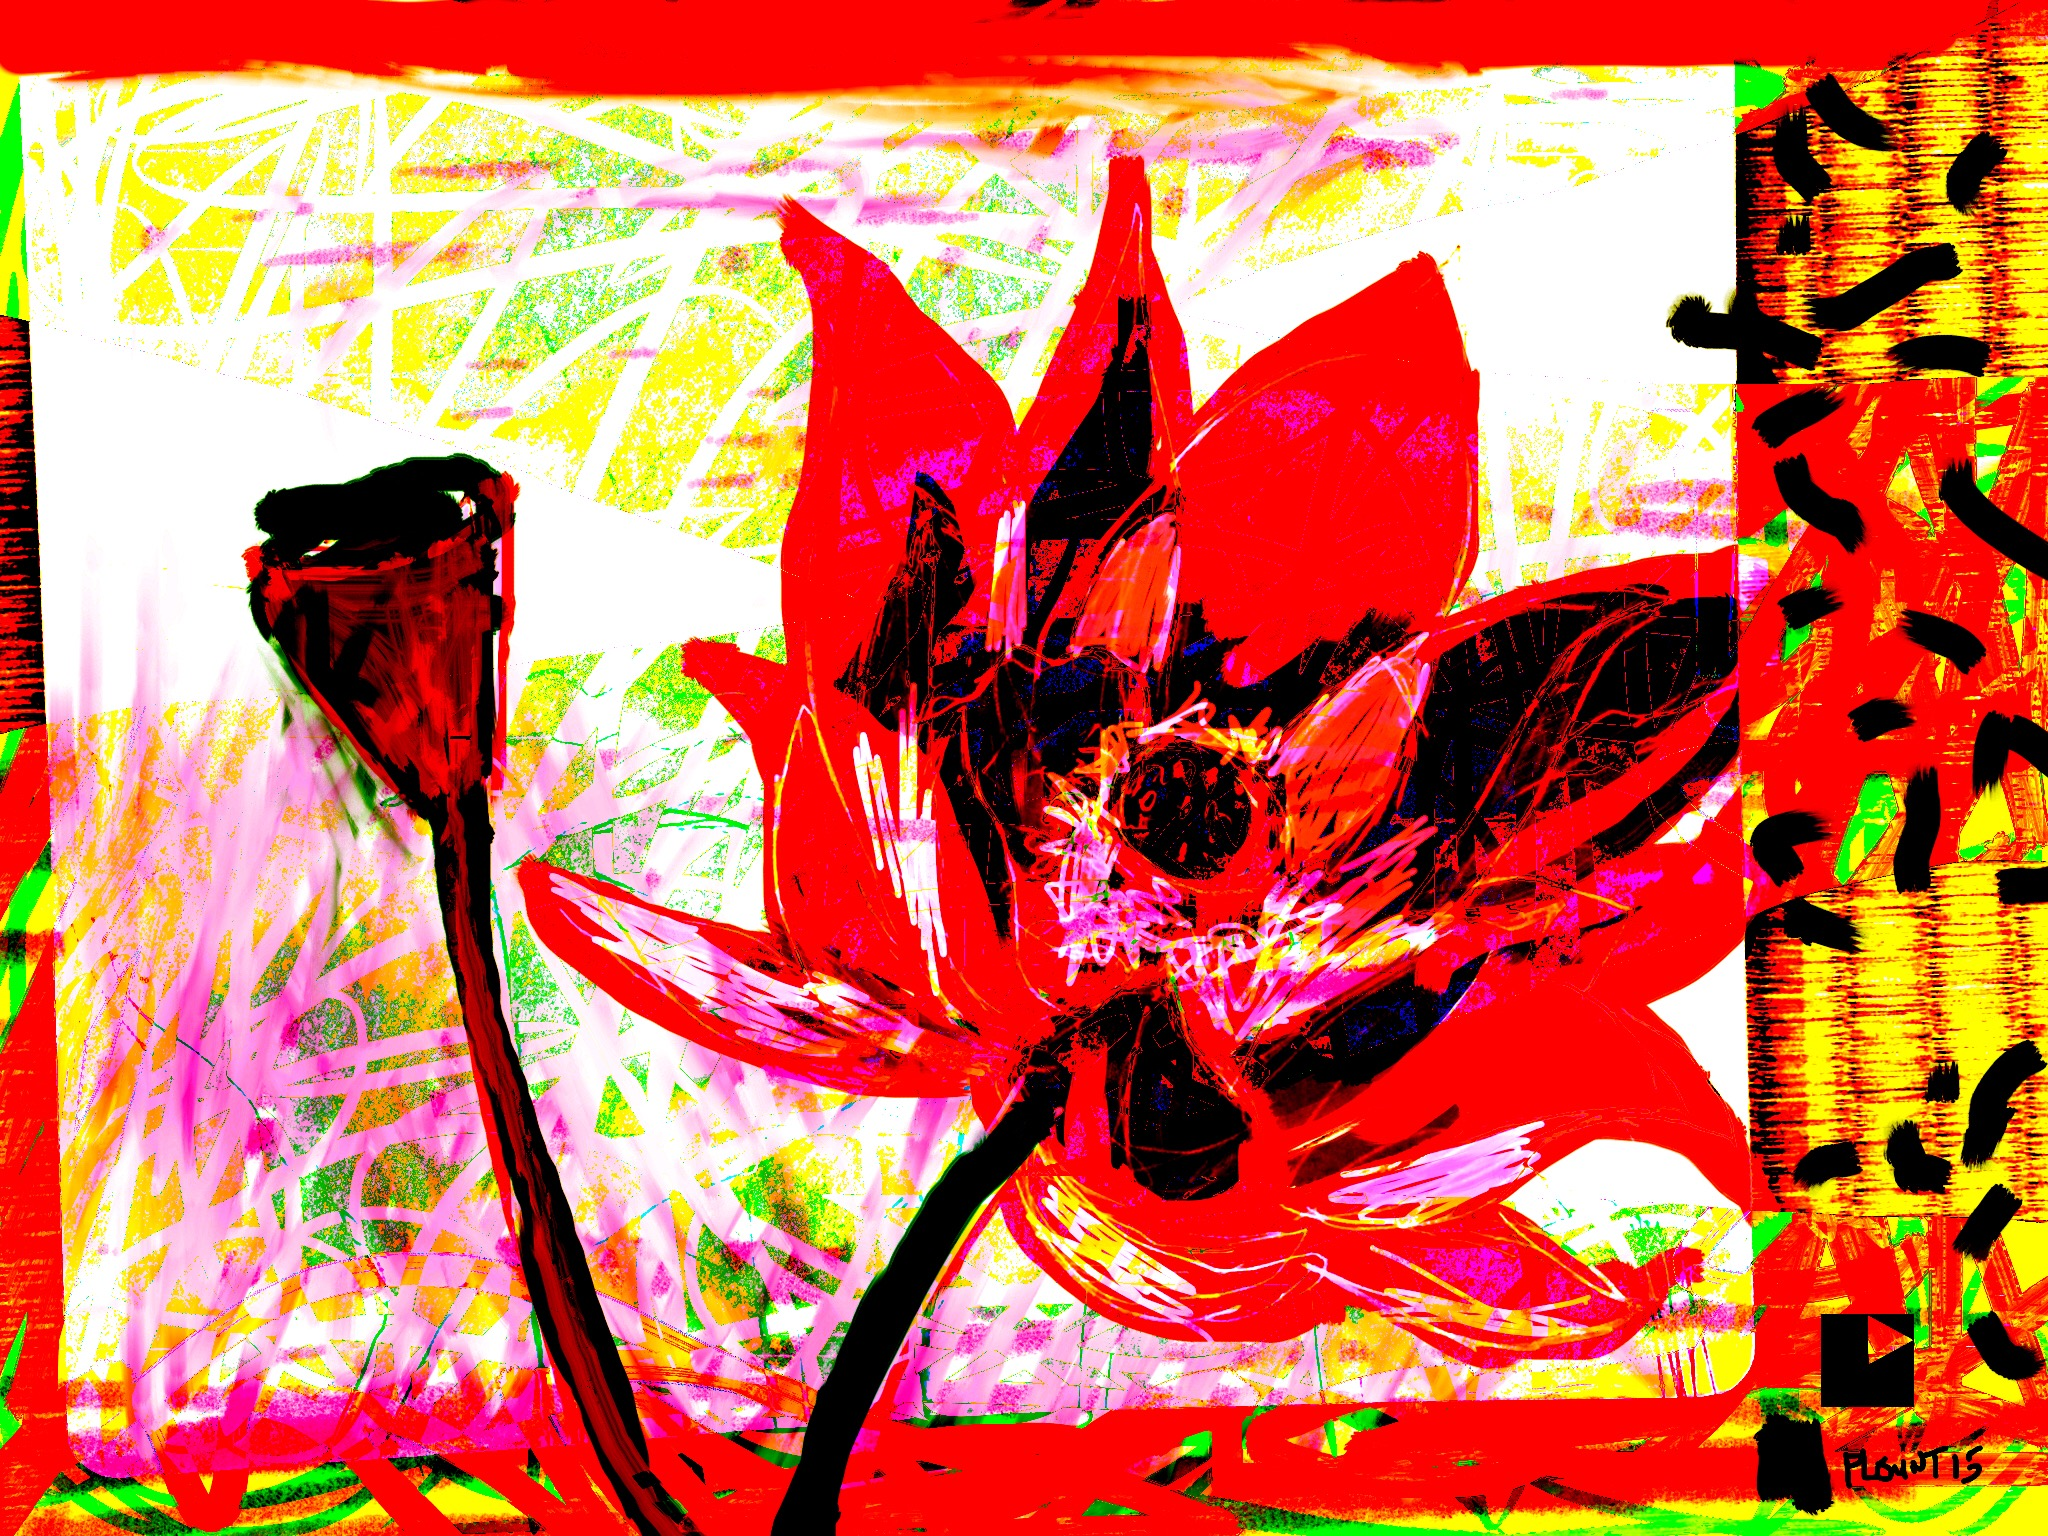 """Red Lotus   Electronics Painting, Sketchbook Scan, iPad, Procreate, Pencil 53, Photoshop. © 2016 dimensions variable to 48"""" x 60"""" giclee limited edition prints available contact the artist"""